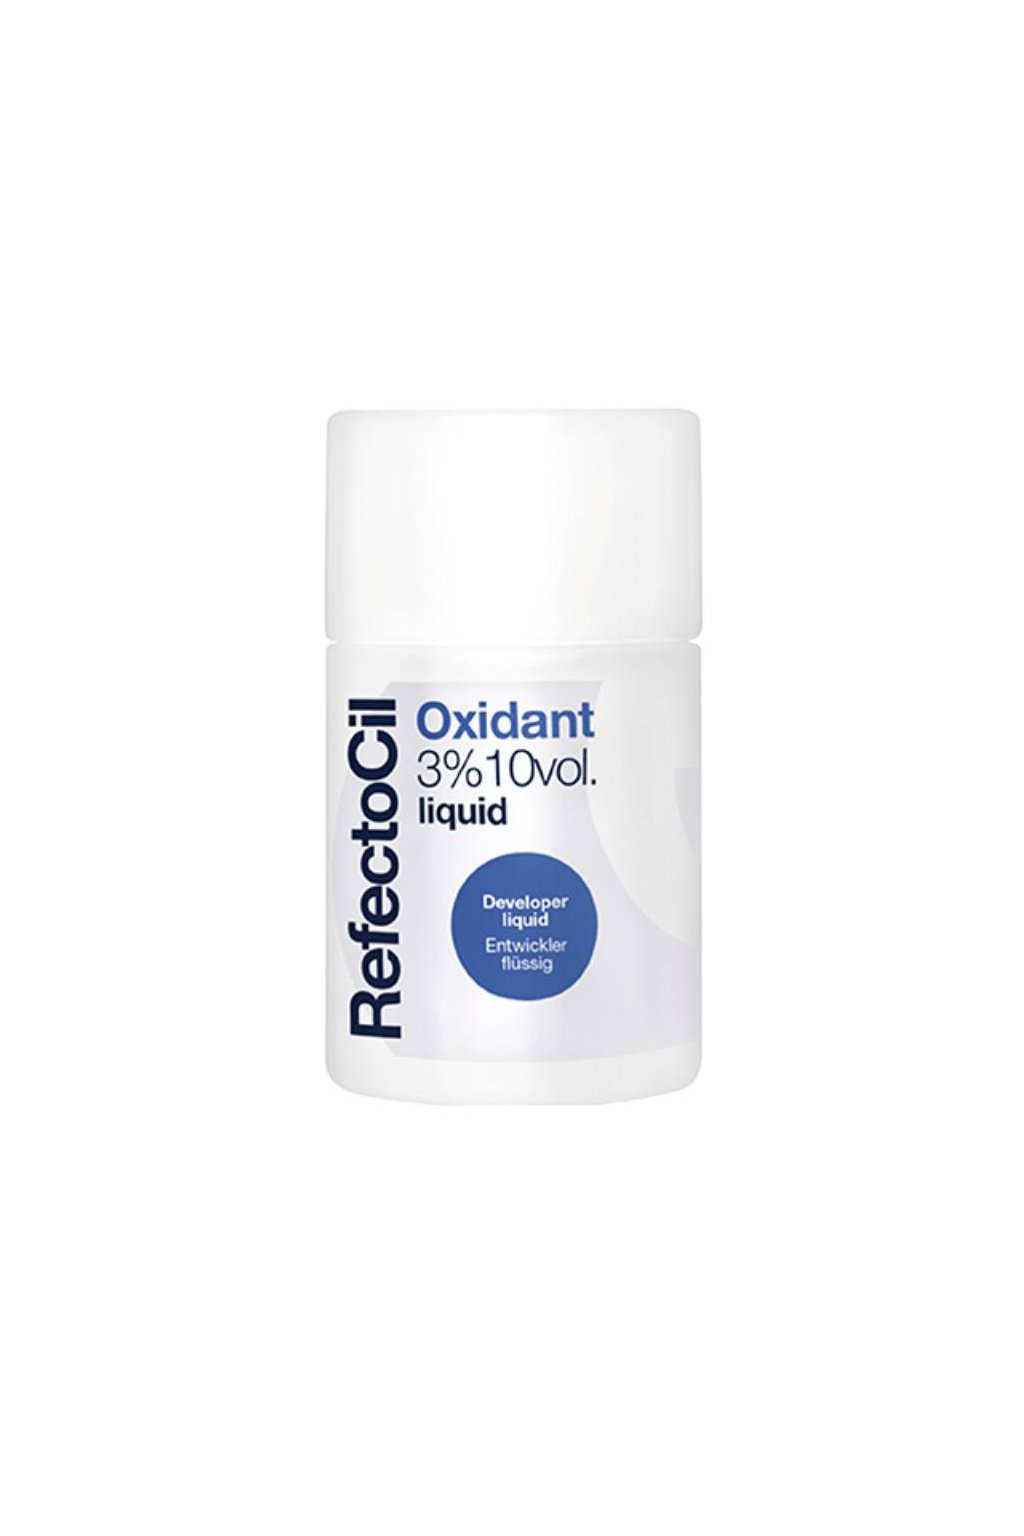 10661 refectocil oxidant 3 tekuty liquid 100ml